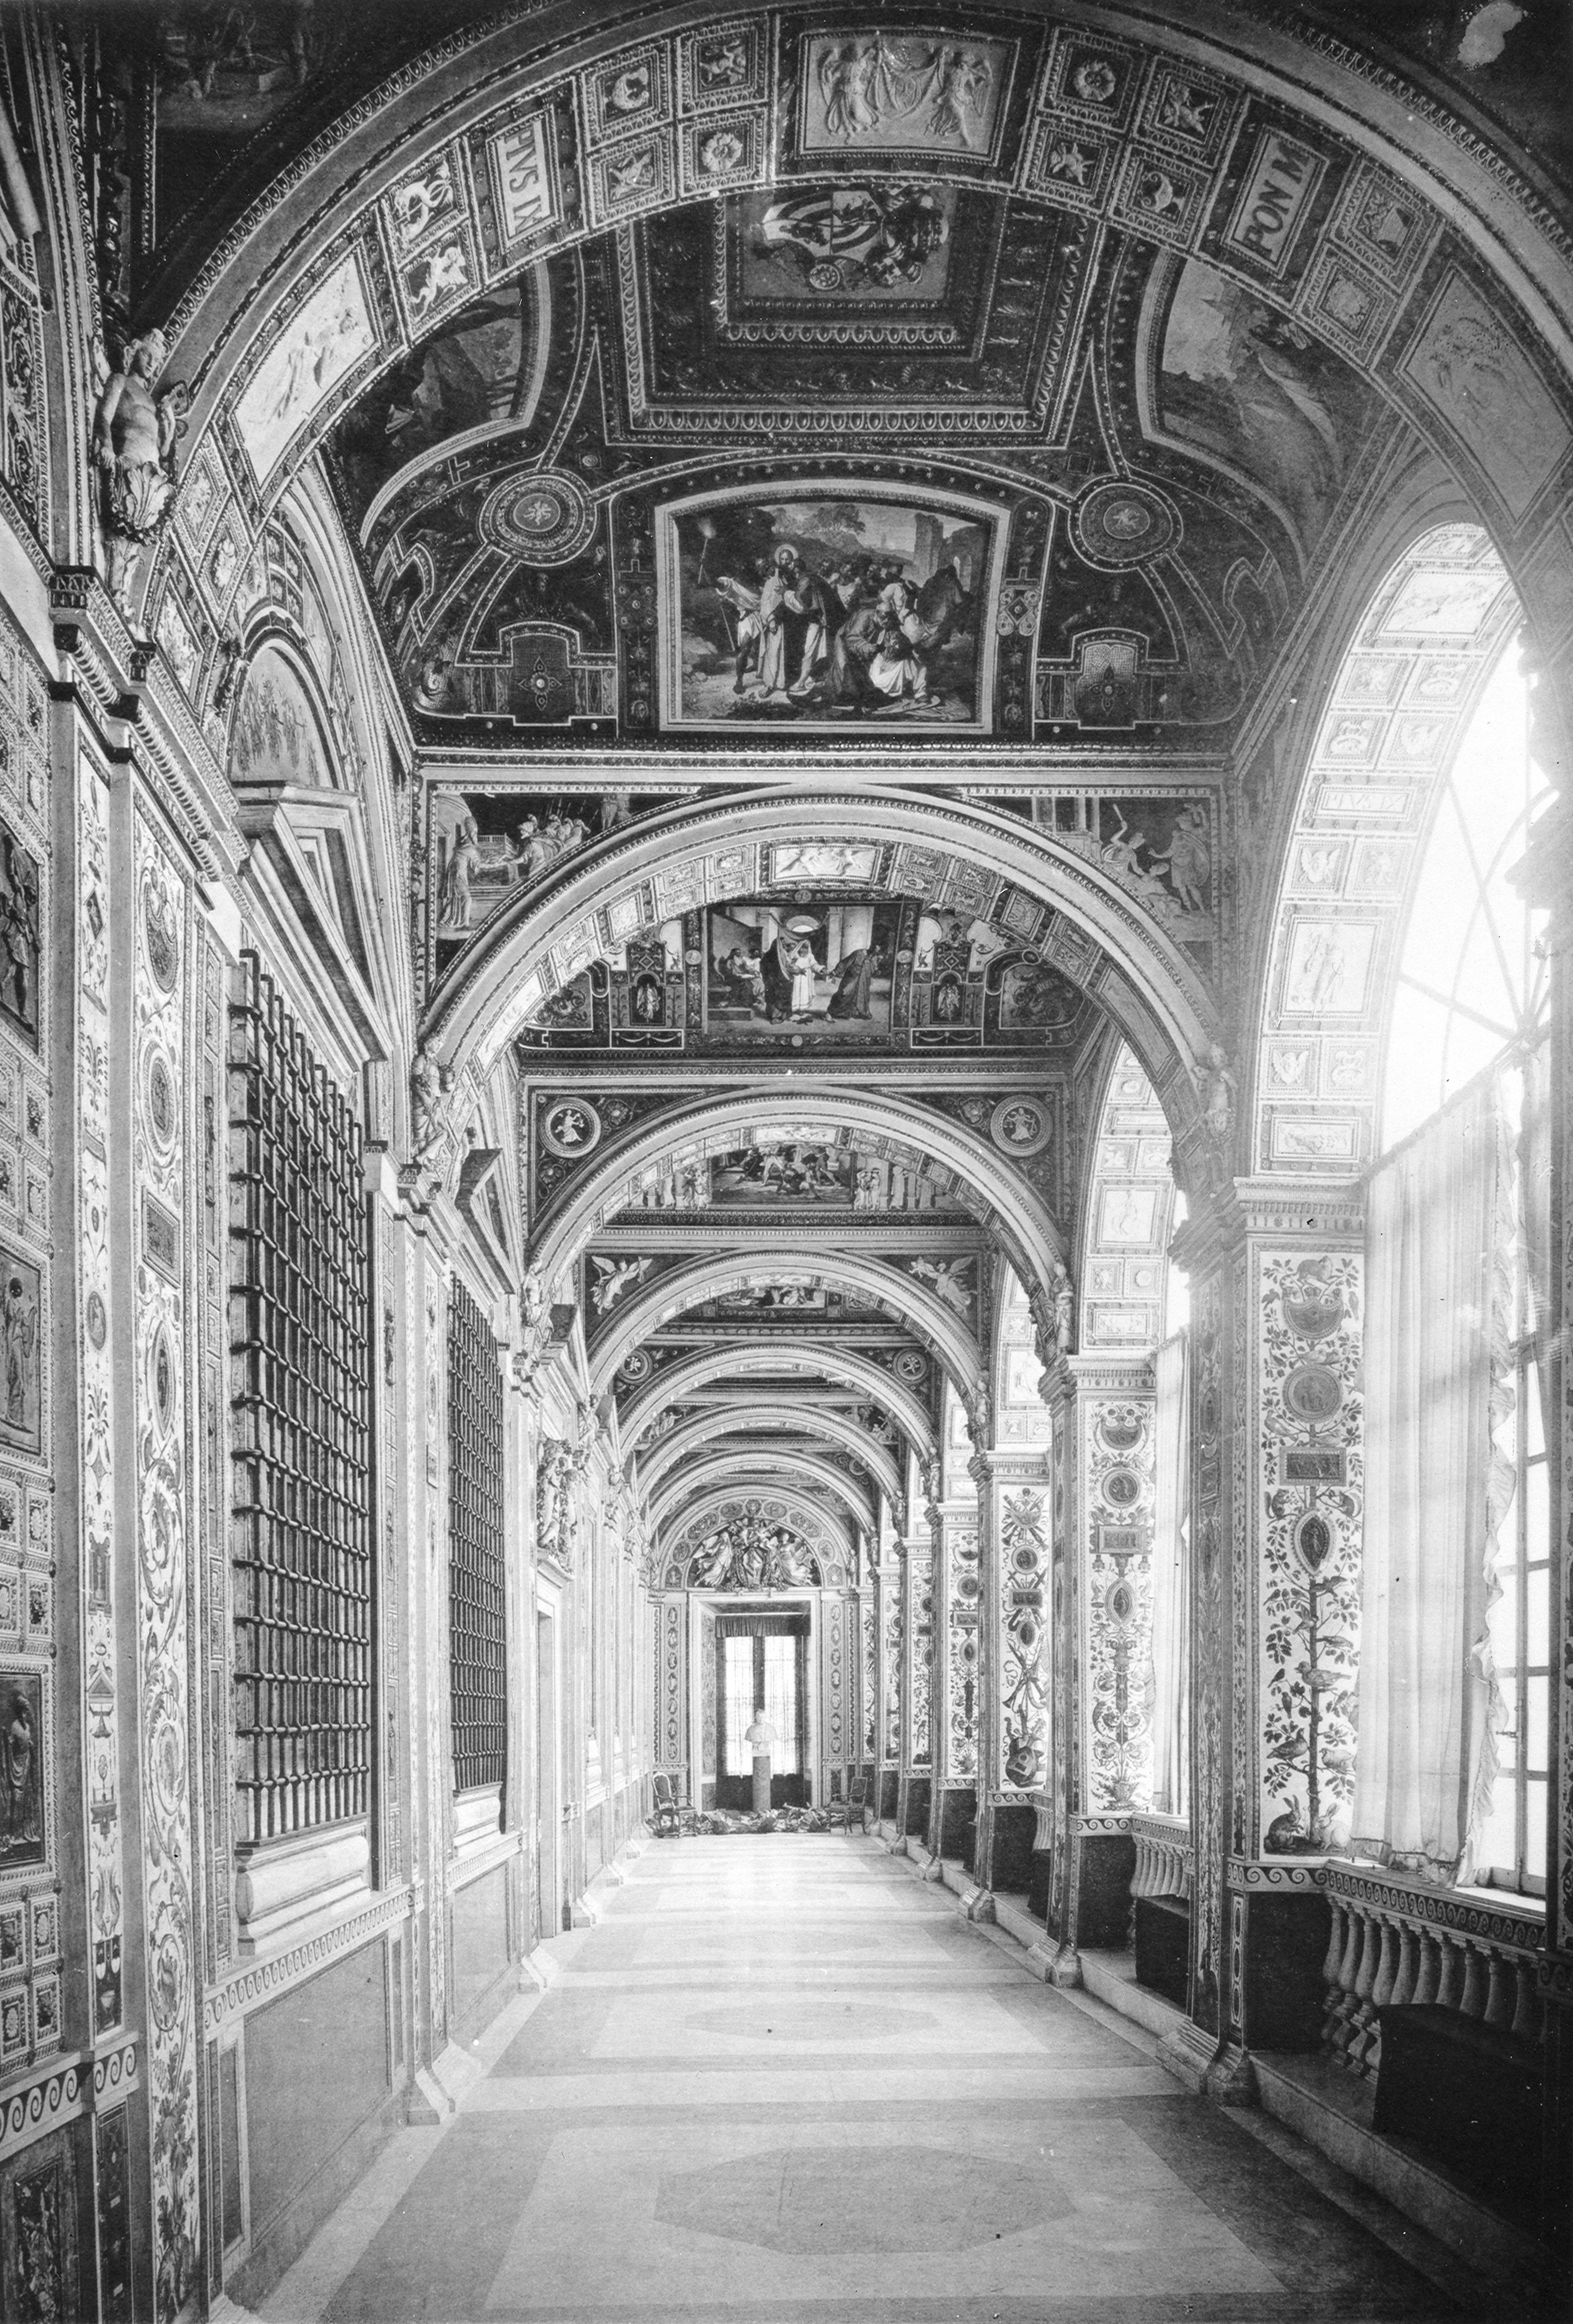 Raphael's Loggia in the Vatican